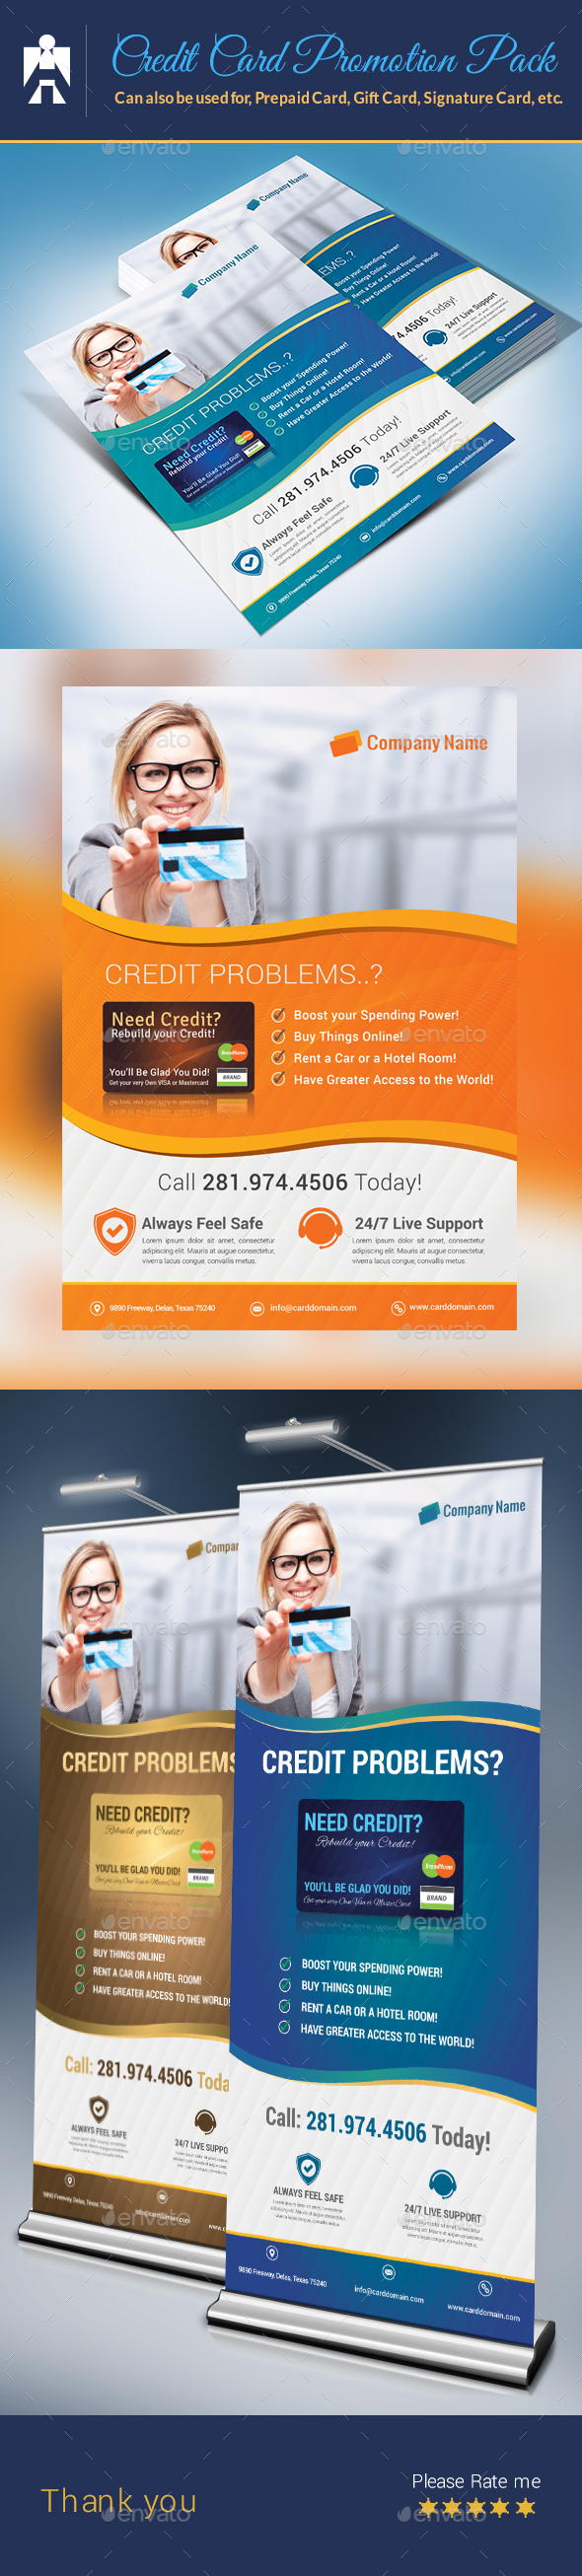 Credit Card Promotion Pack